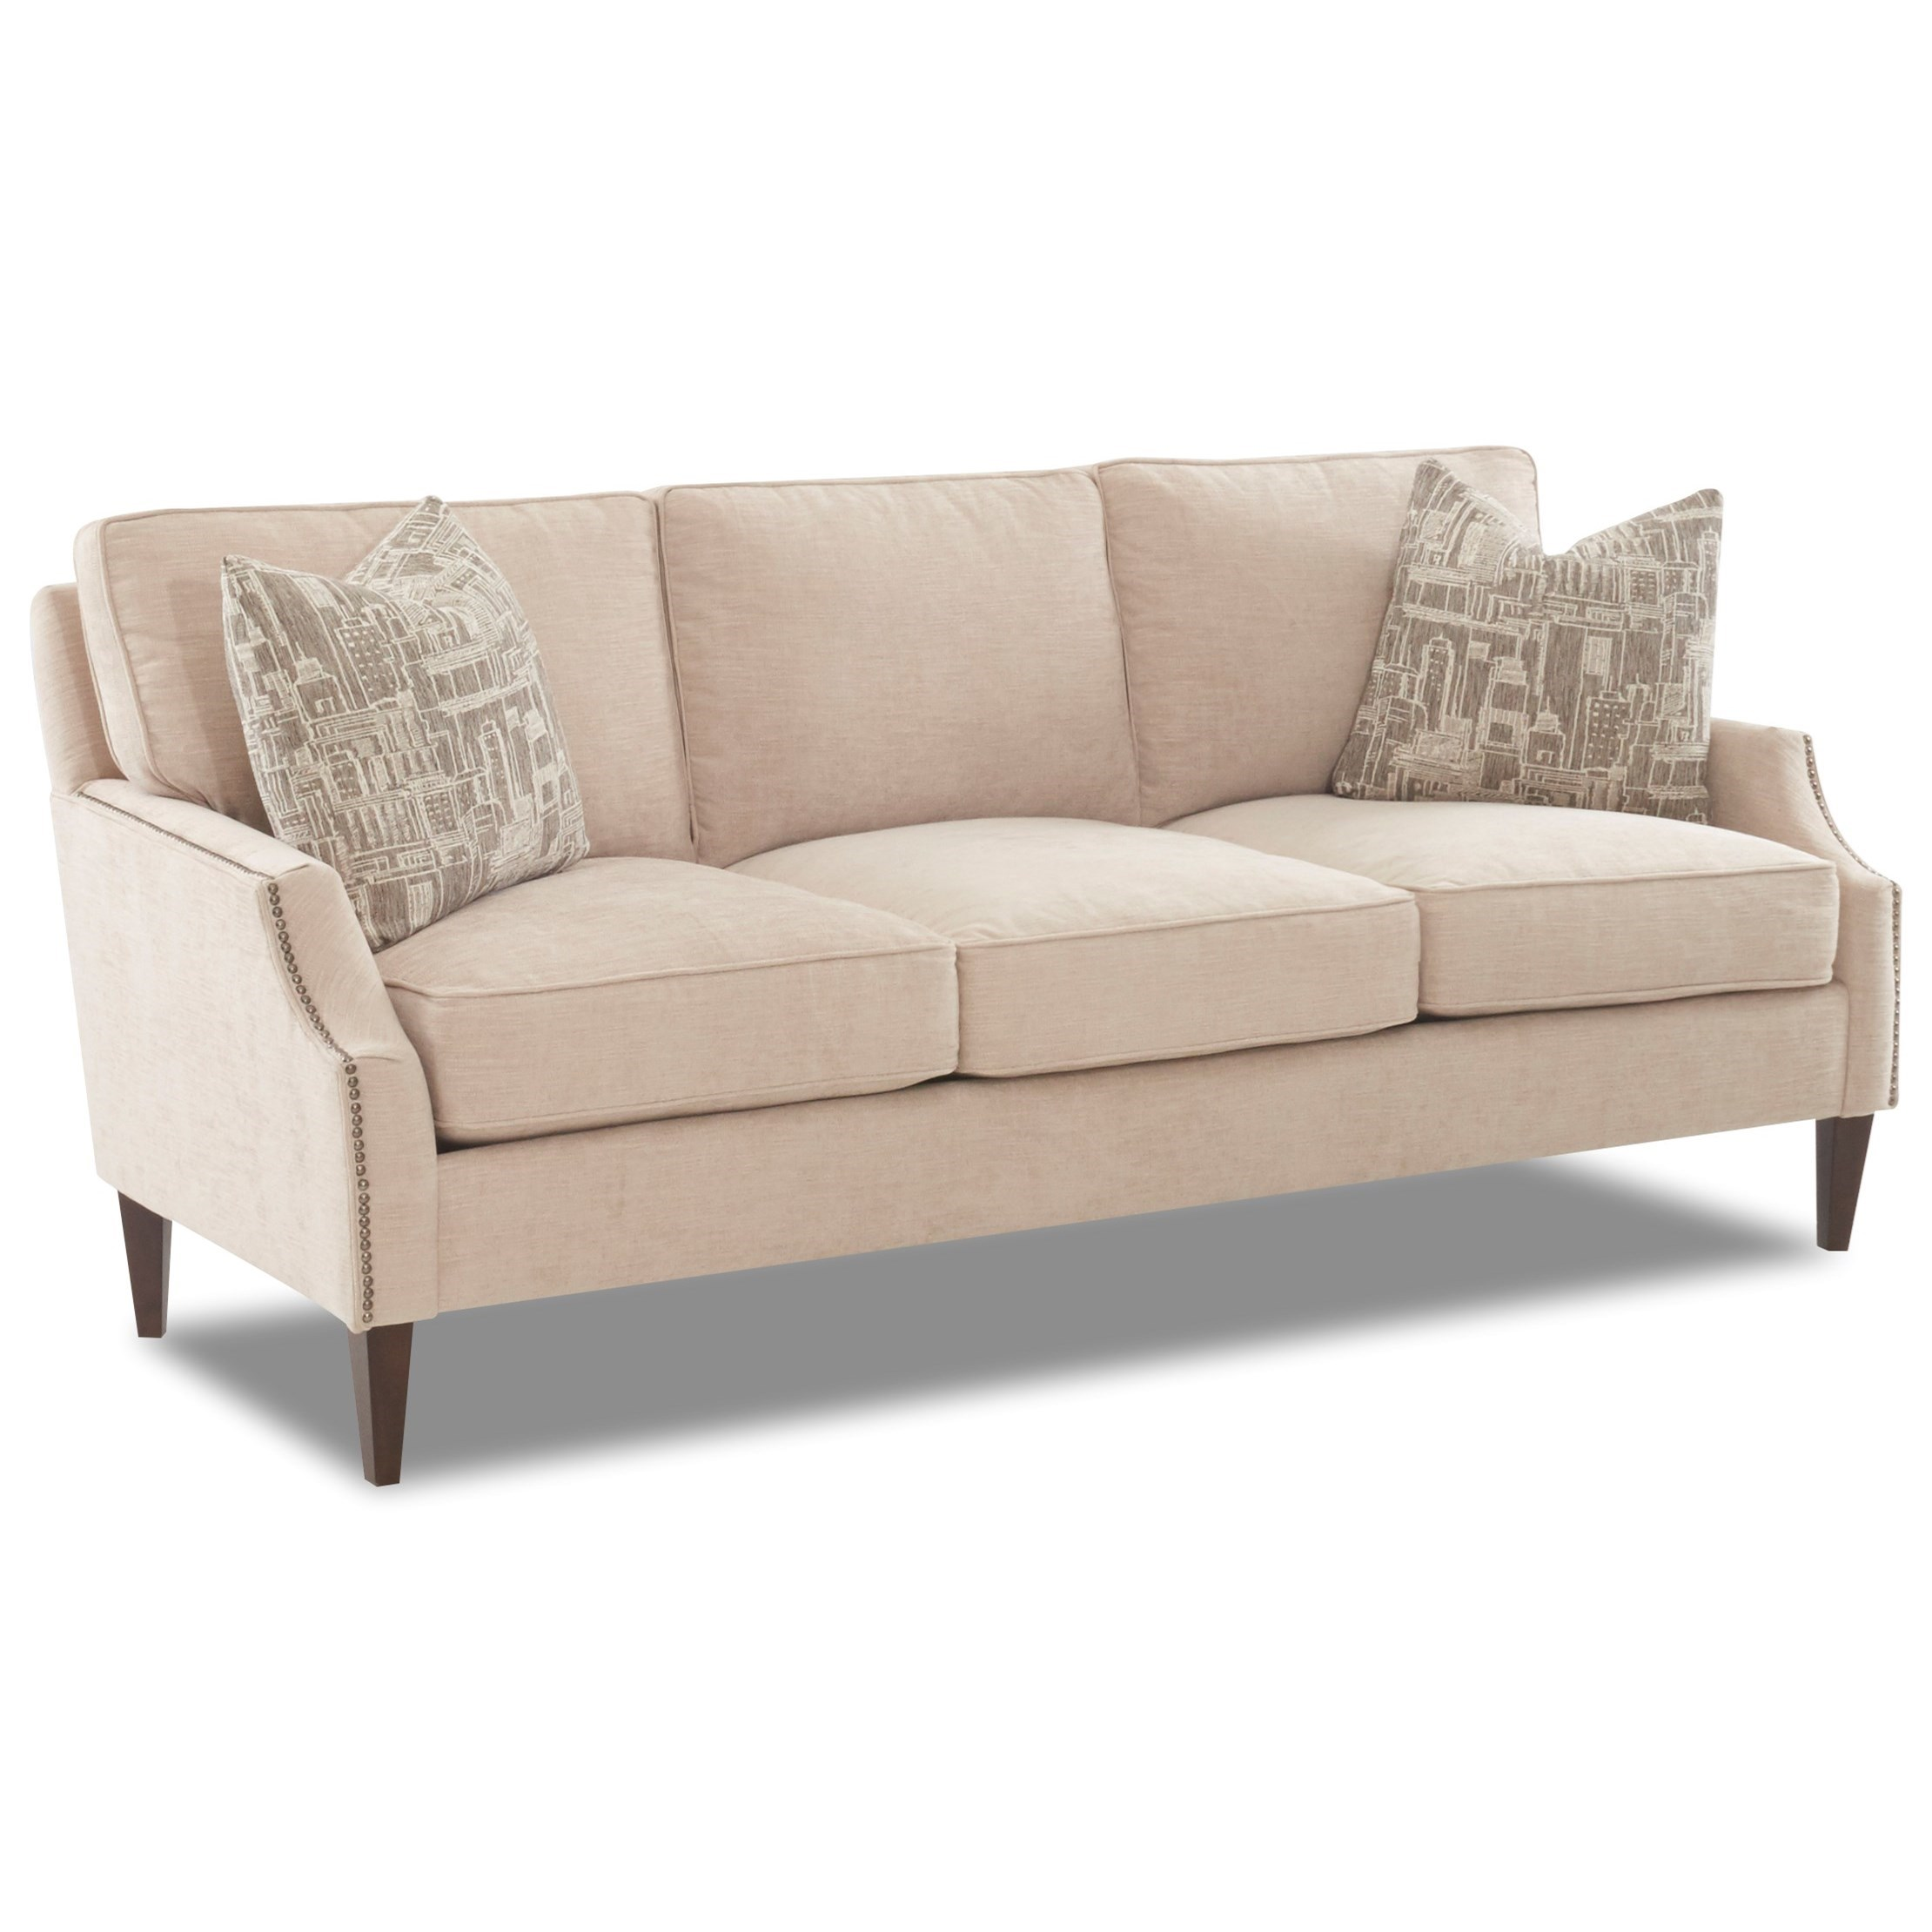 Transitional Sofa with Arm Pillows